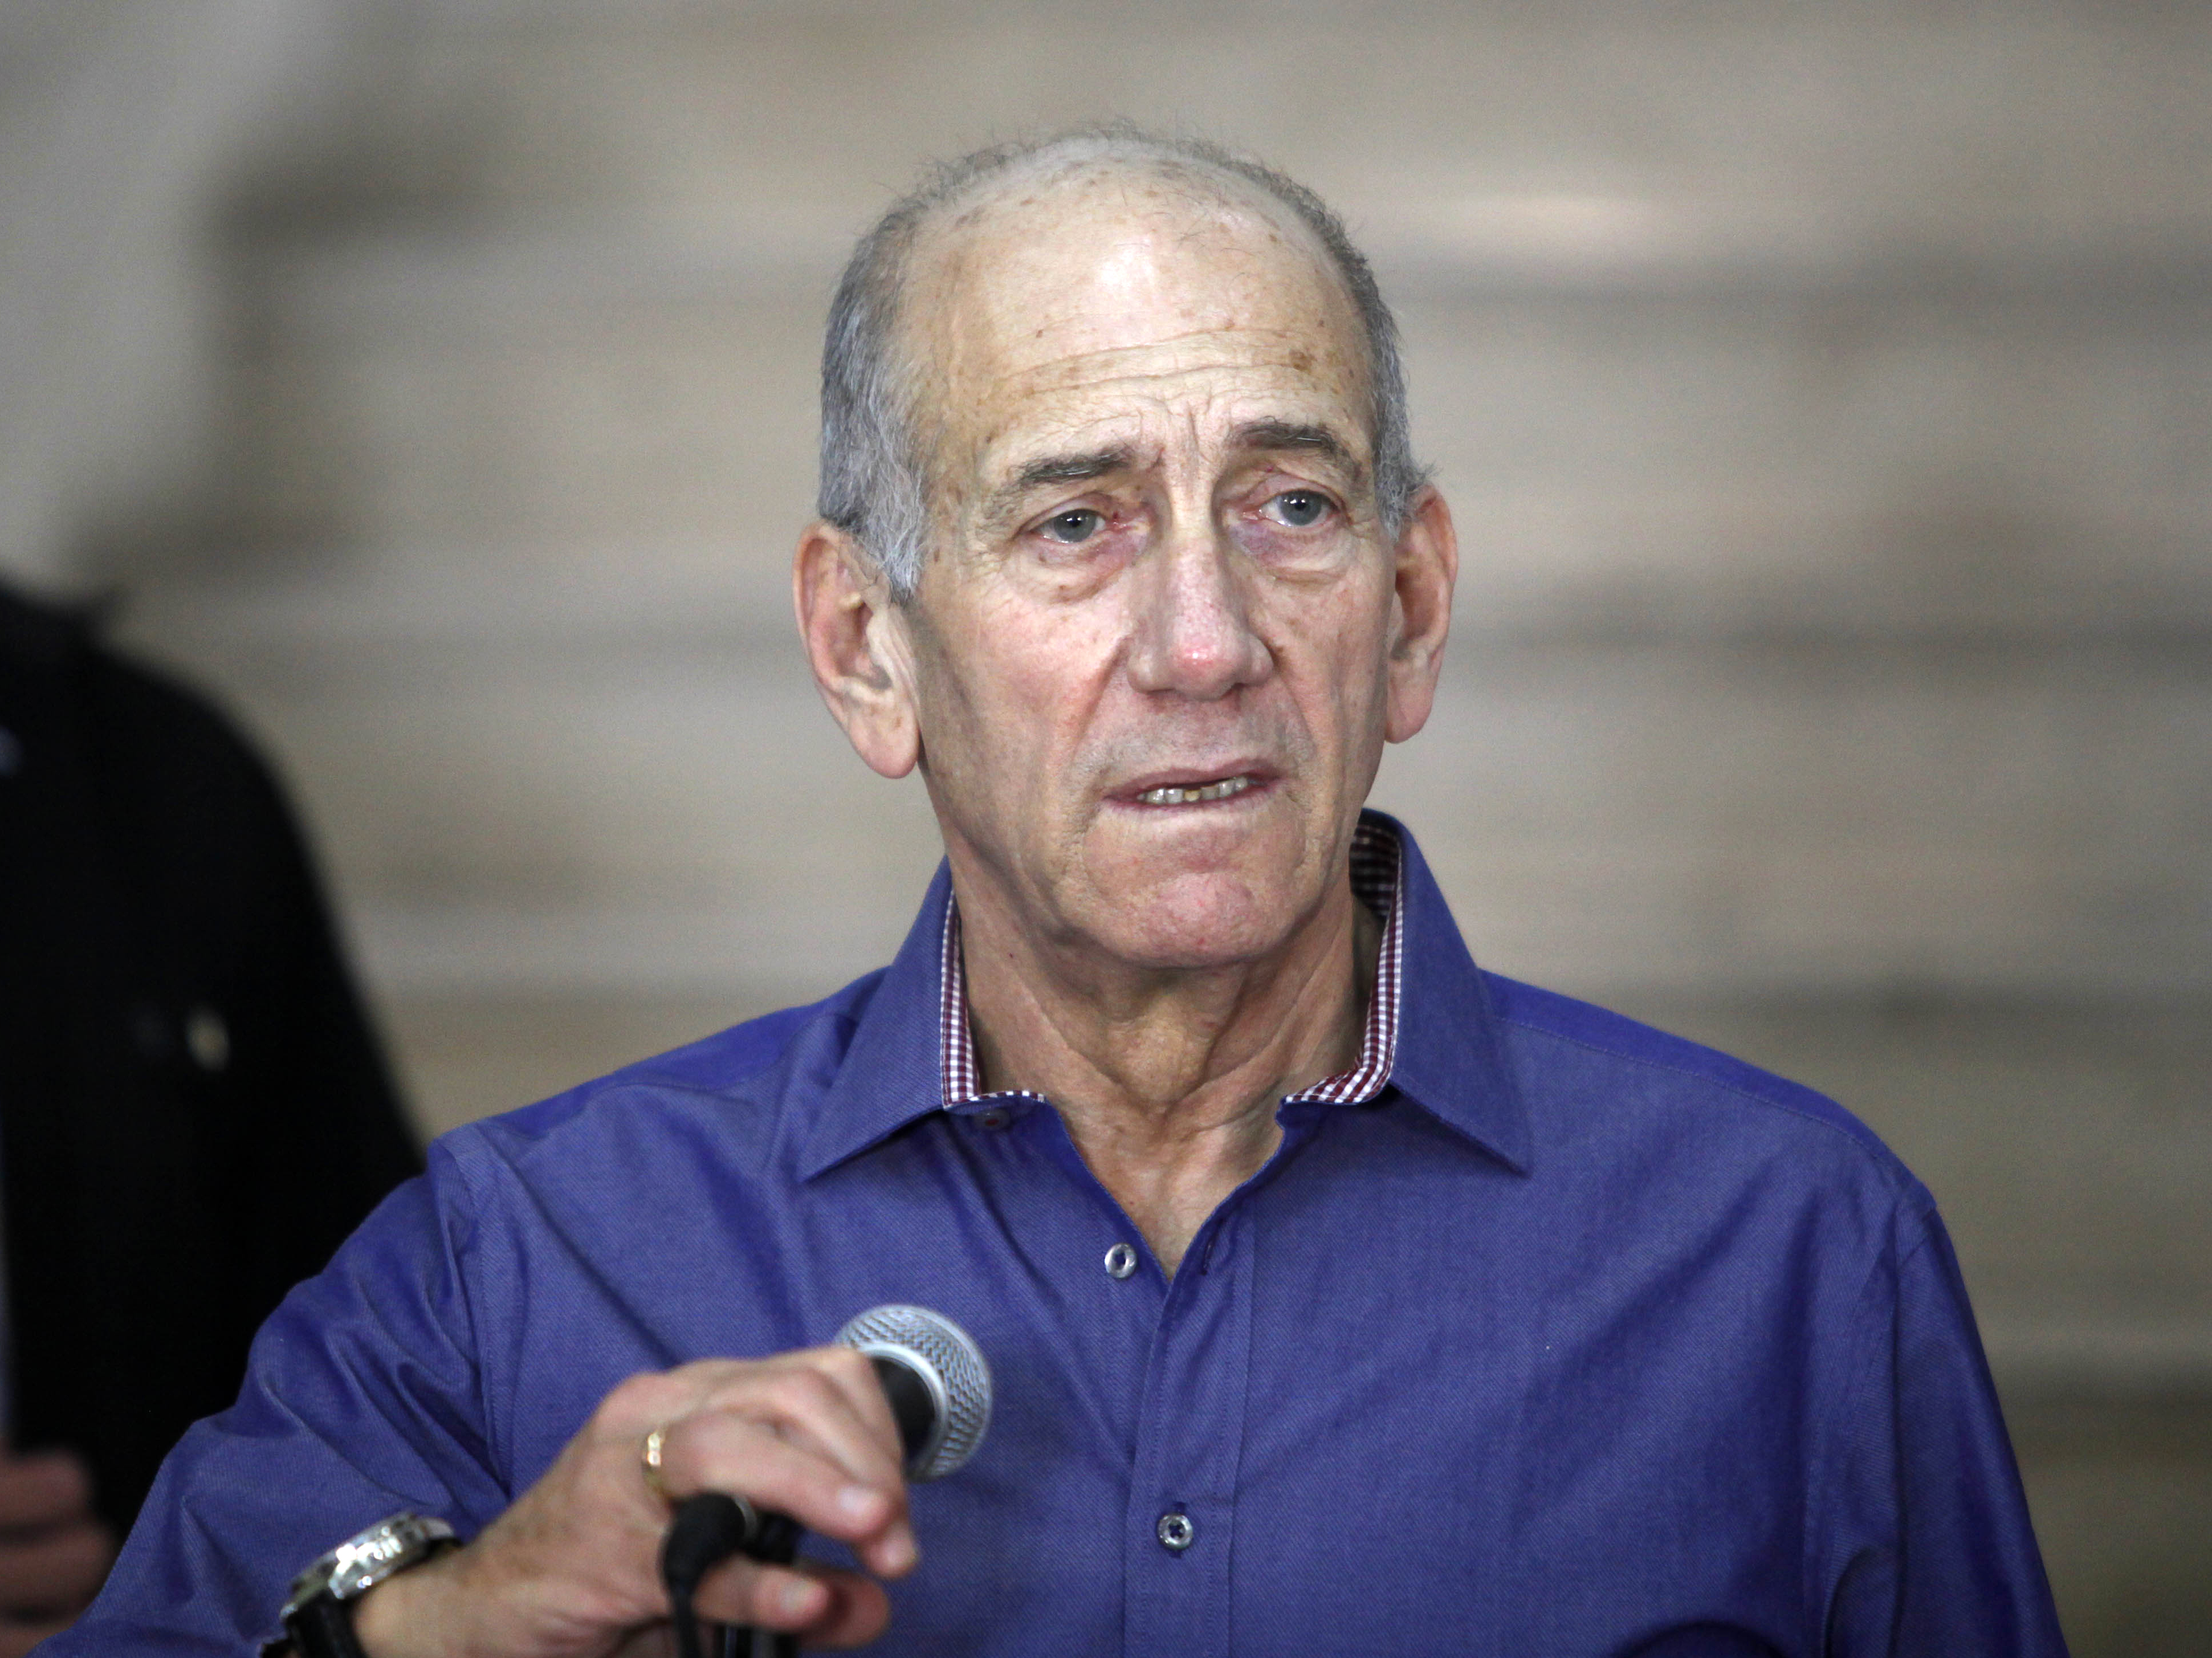 Former Israeli Prime Minister Ehud Olmert diverges from the official Israeli position on the U.N. General Assembly vote last week.